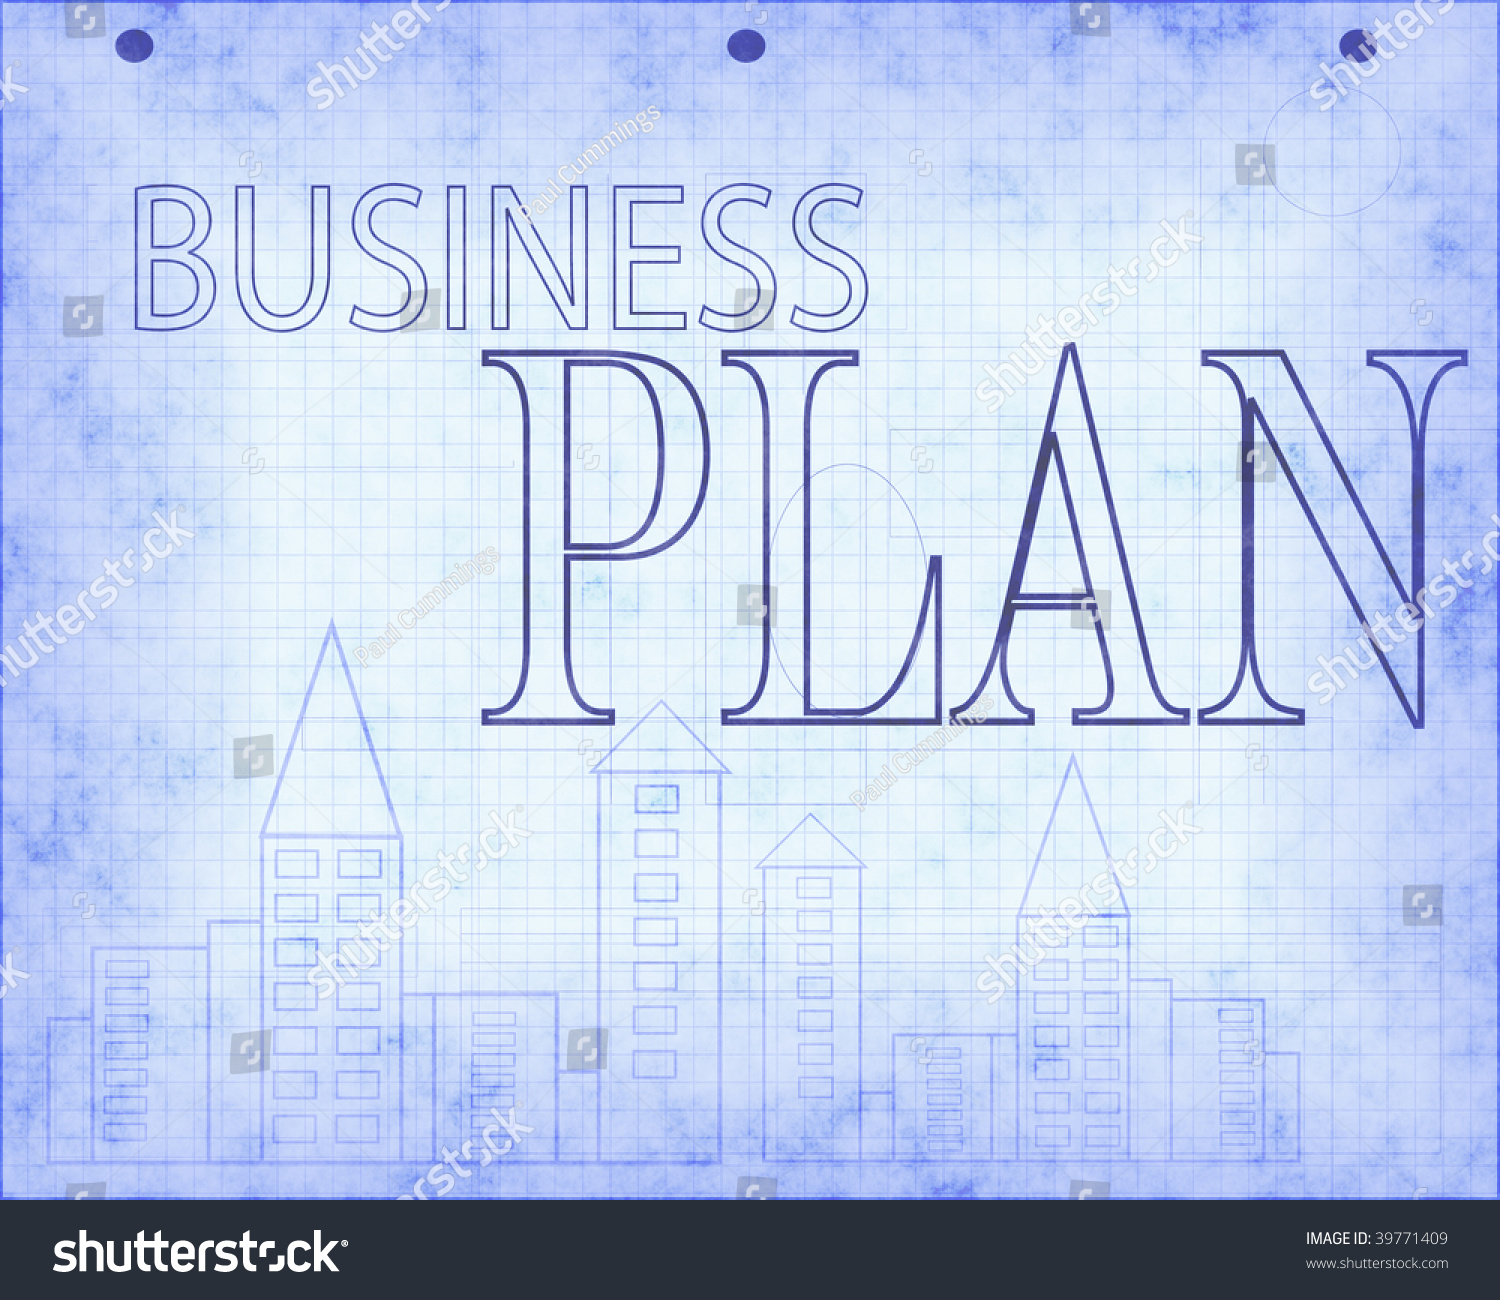 Blueprint business plan design stock illustration 39771409 blueprint of business plan design malvernweather Image collections